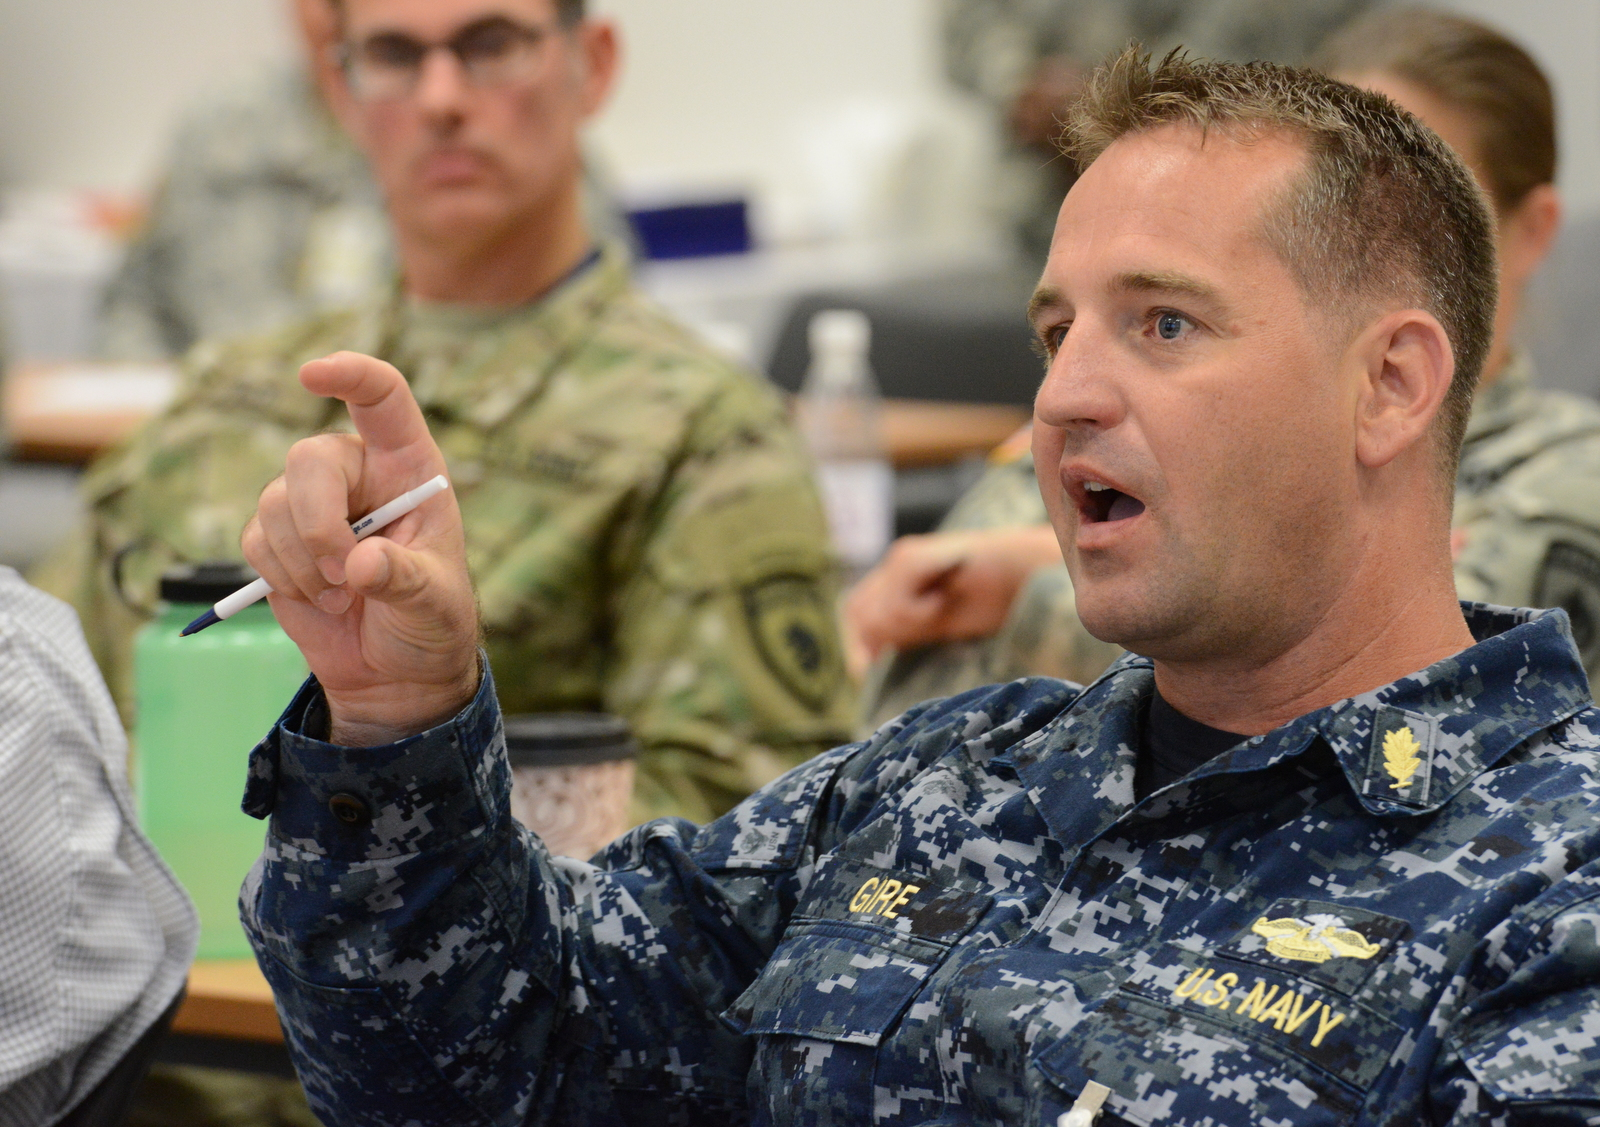 U.S. Navy Lt. Cdr. Randy Gire, a medical planner with U.S. Naval Forces Europe and Africa, asks a question during the 2015 AFRICOM Command Surgeon's Conference at Kelley Barracks, U.S. Army Garrison Stuttgart, Germany, Sept. 10, 2015. The conference was a forum for medical providers and officers from U.S. component commands and partner nations to discuss how their medical operations collectively support AFRICOM's theater campaign plan.